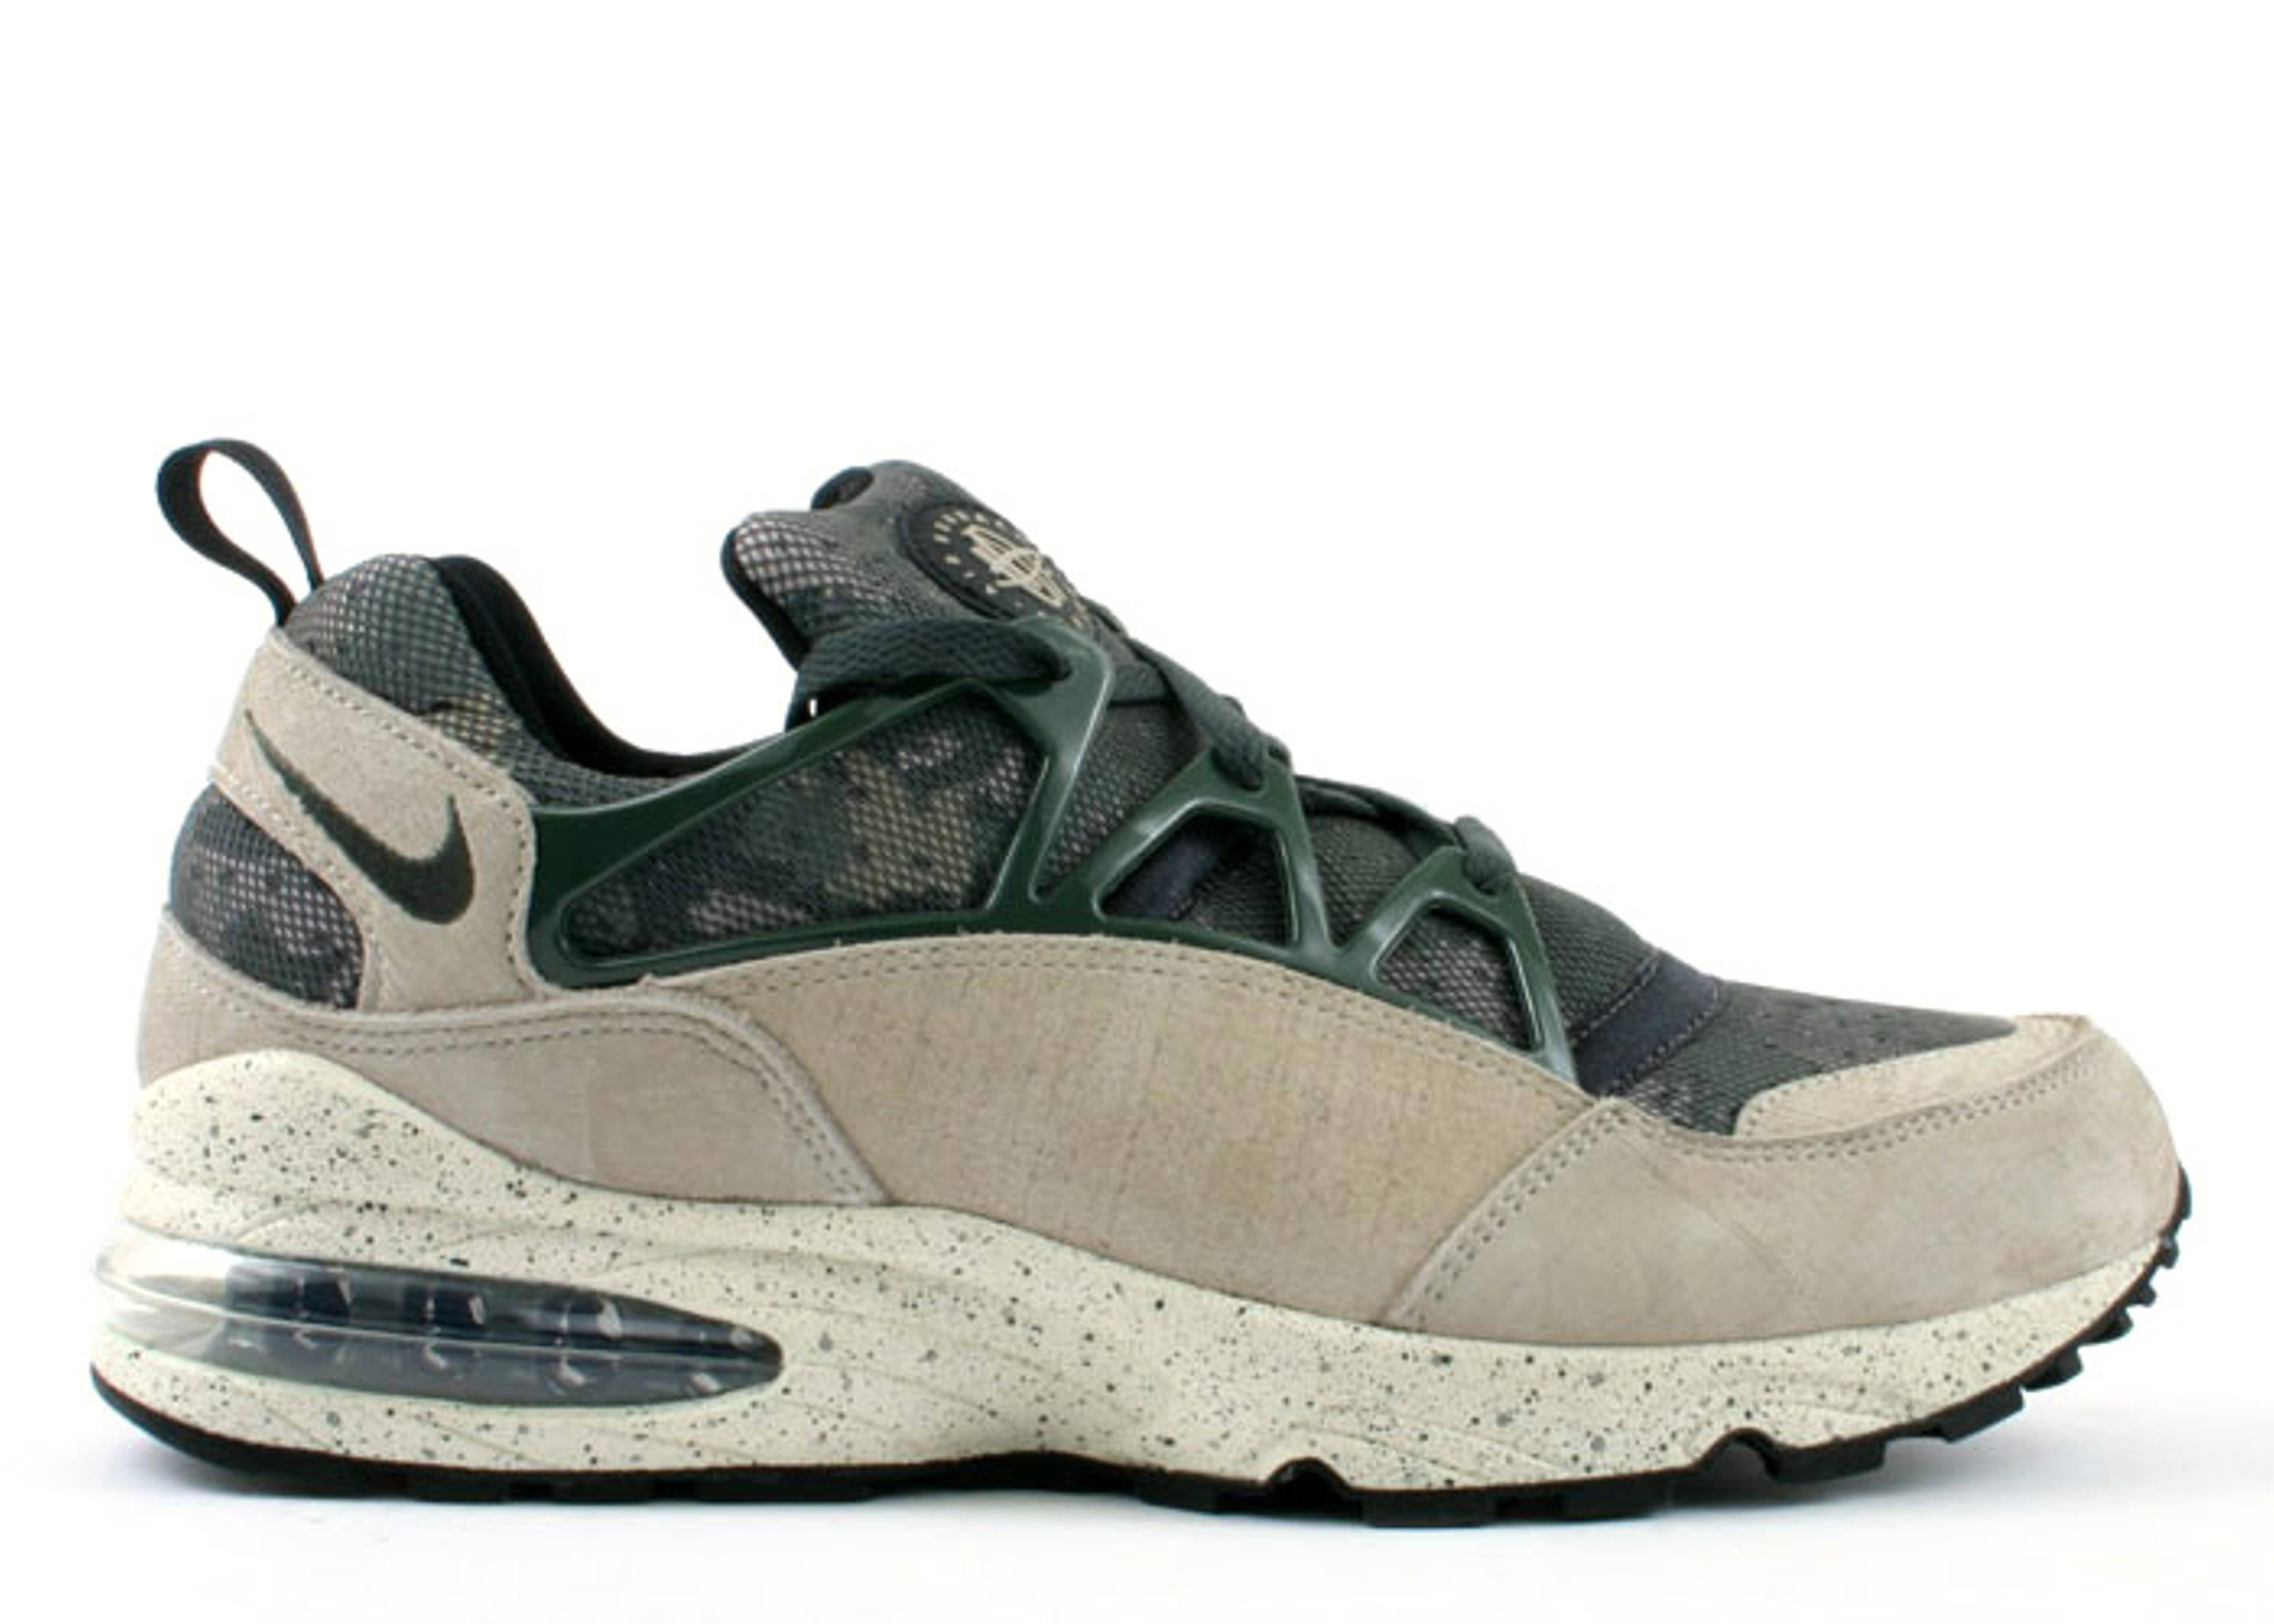 ... authentic nike air huarache light burst 6fd5a 959ab 54e2550c8